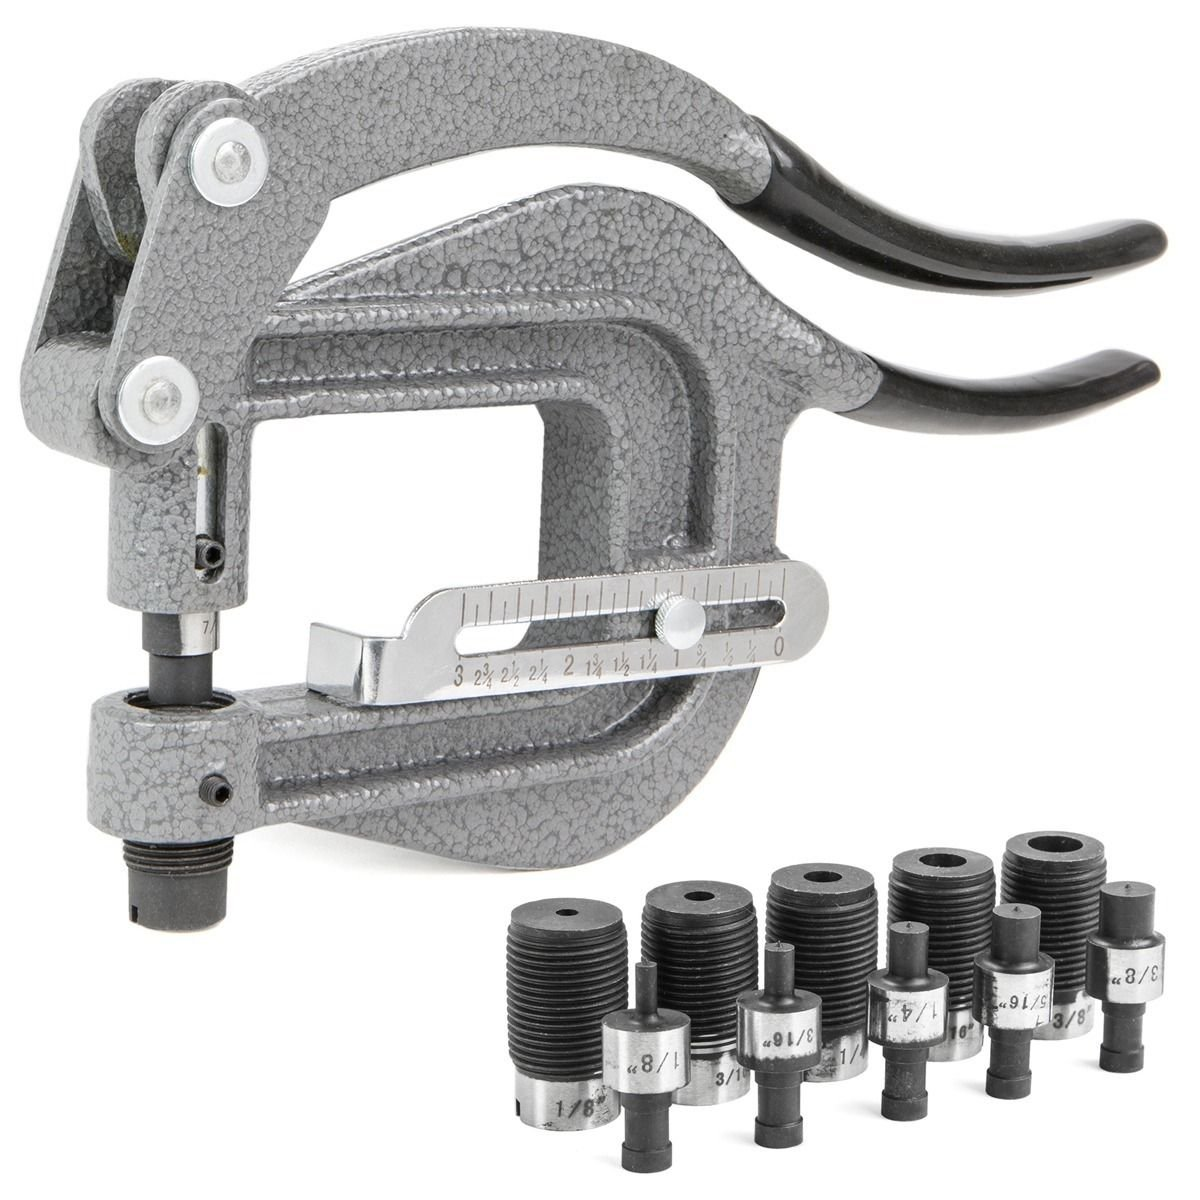 GHP Portable 1.2-Ton Max Force 6-Punch 6-Dies & 5/8'' Opening Puncher Power Punch Kit